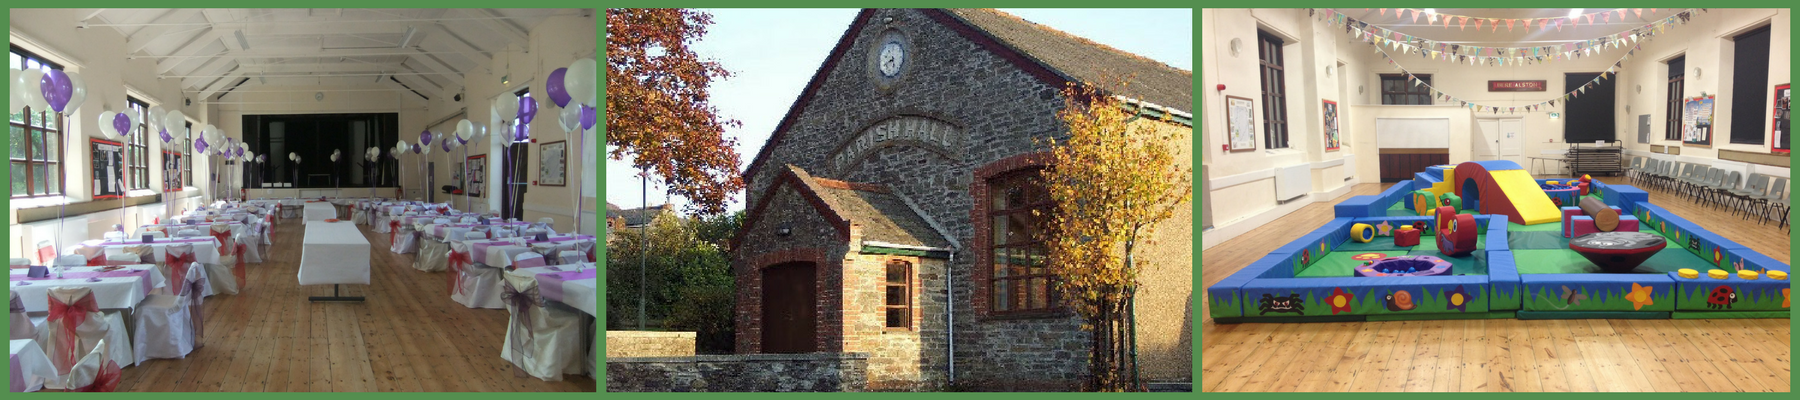 Bere Alston Parish Hall